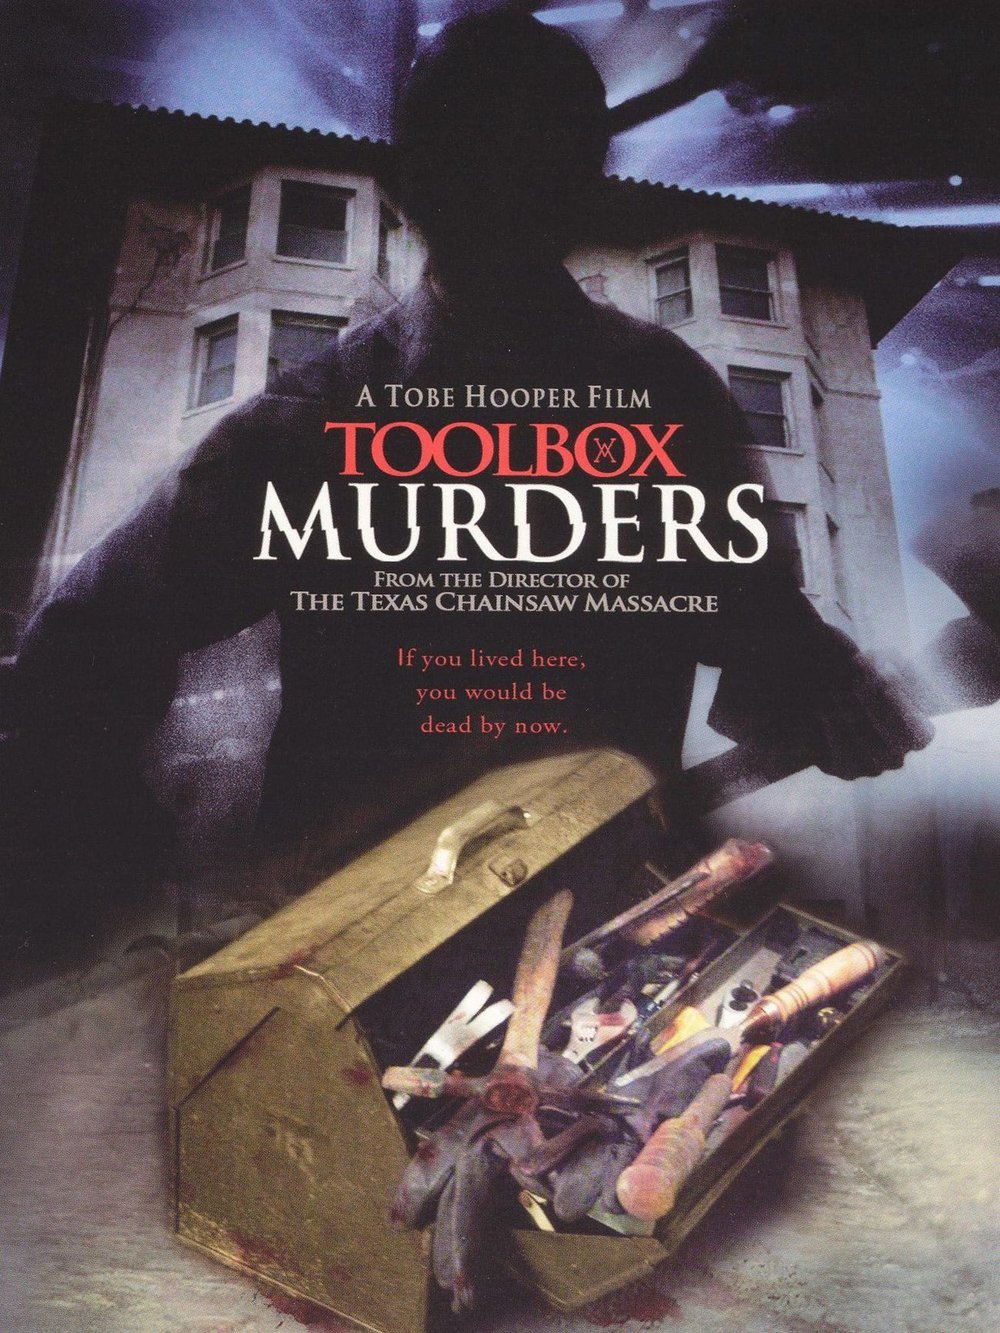 24 - The Toolbox Murders